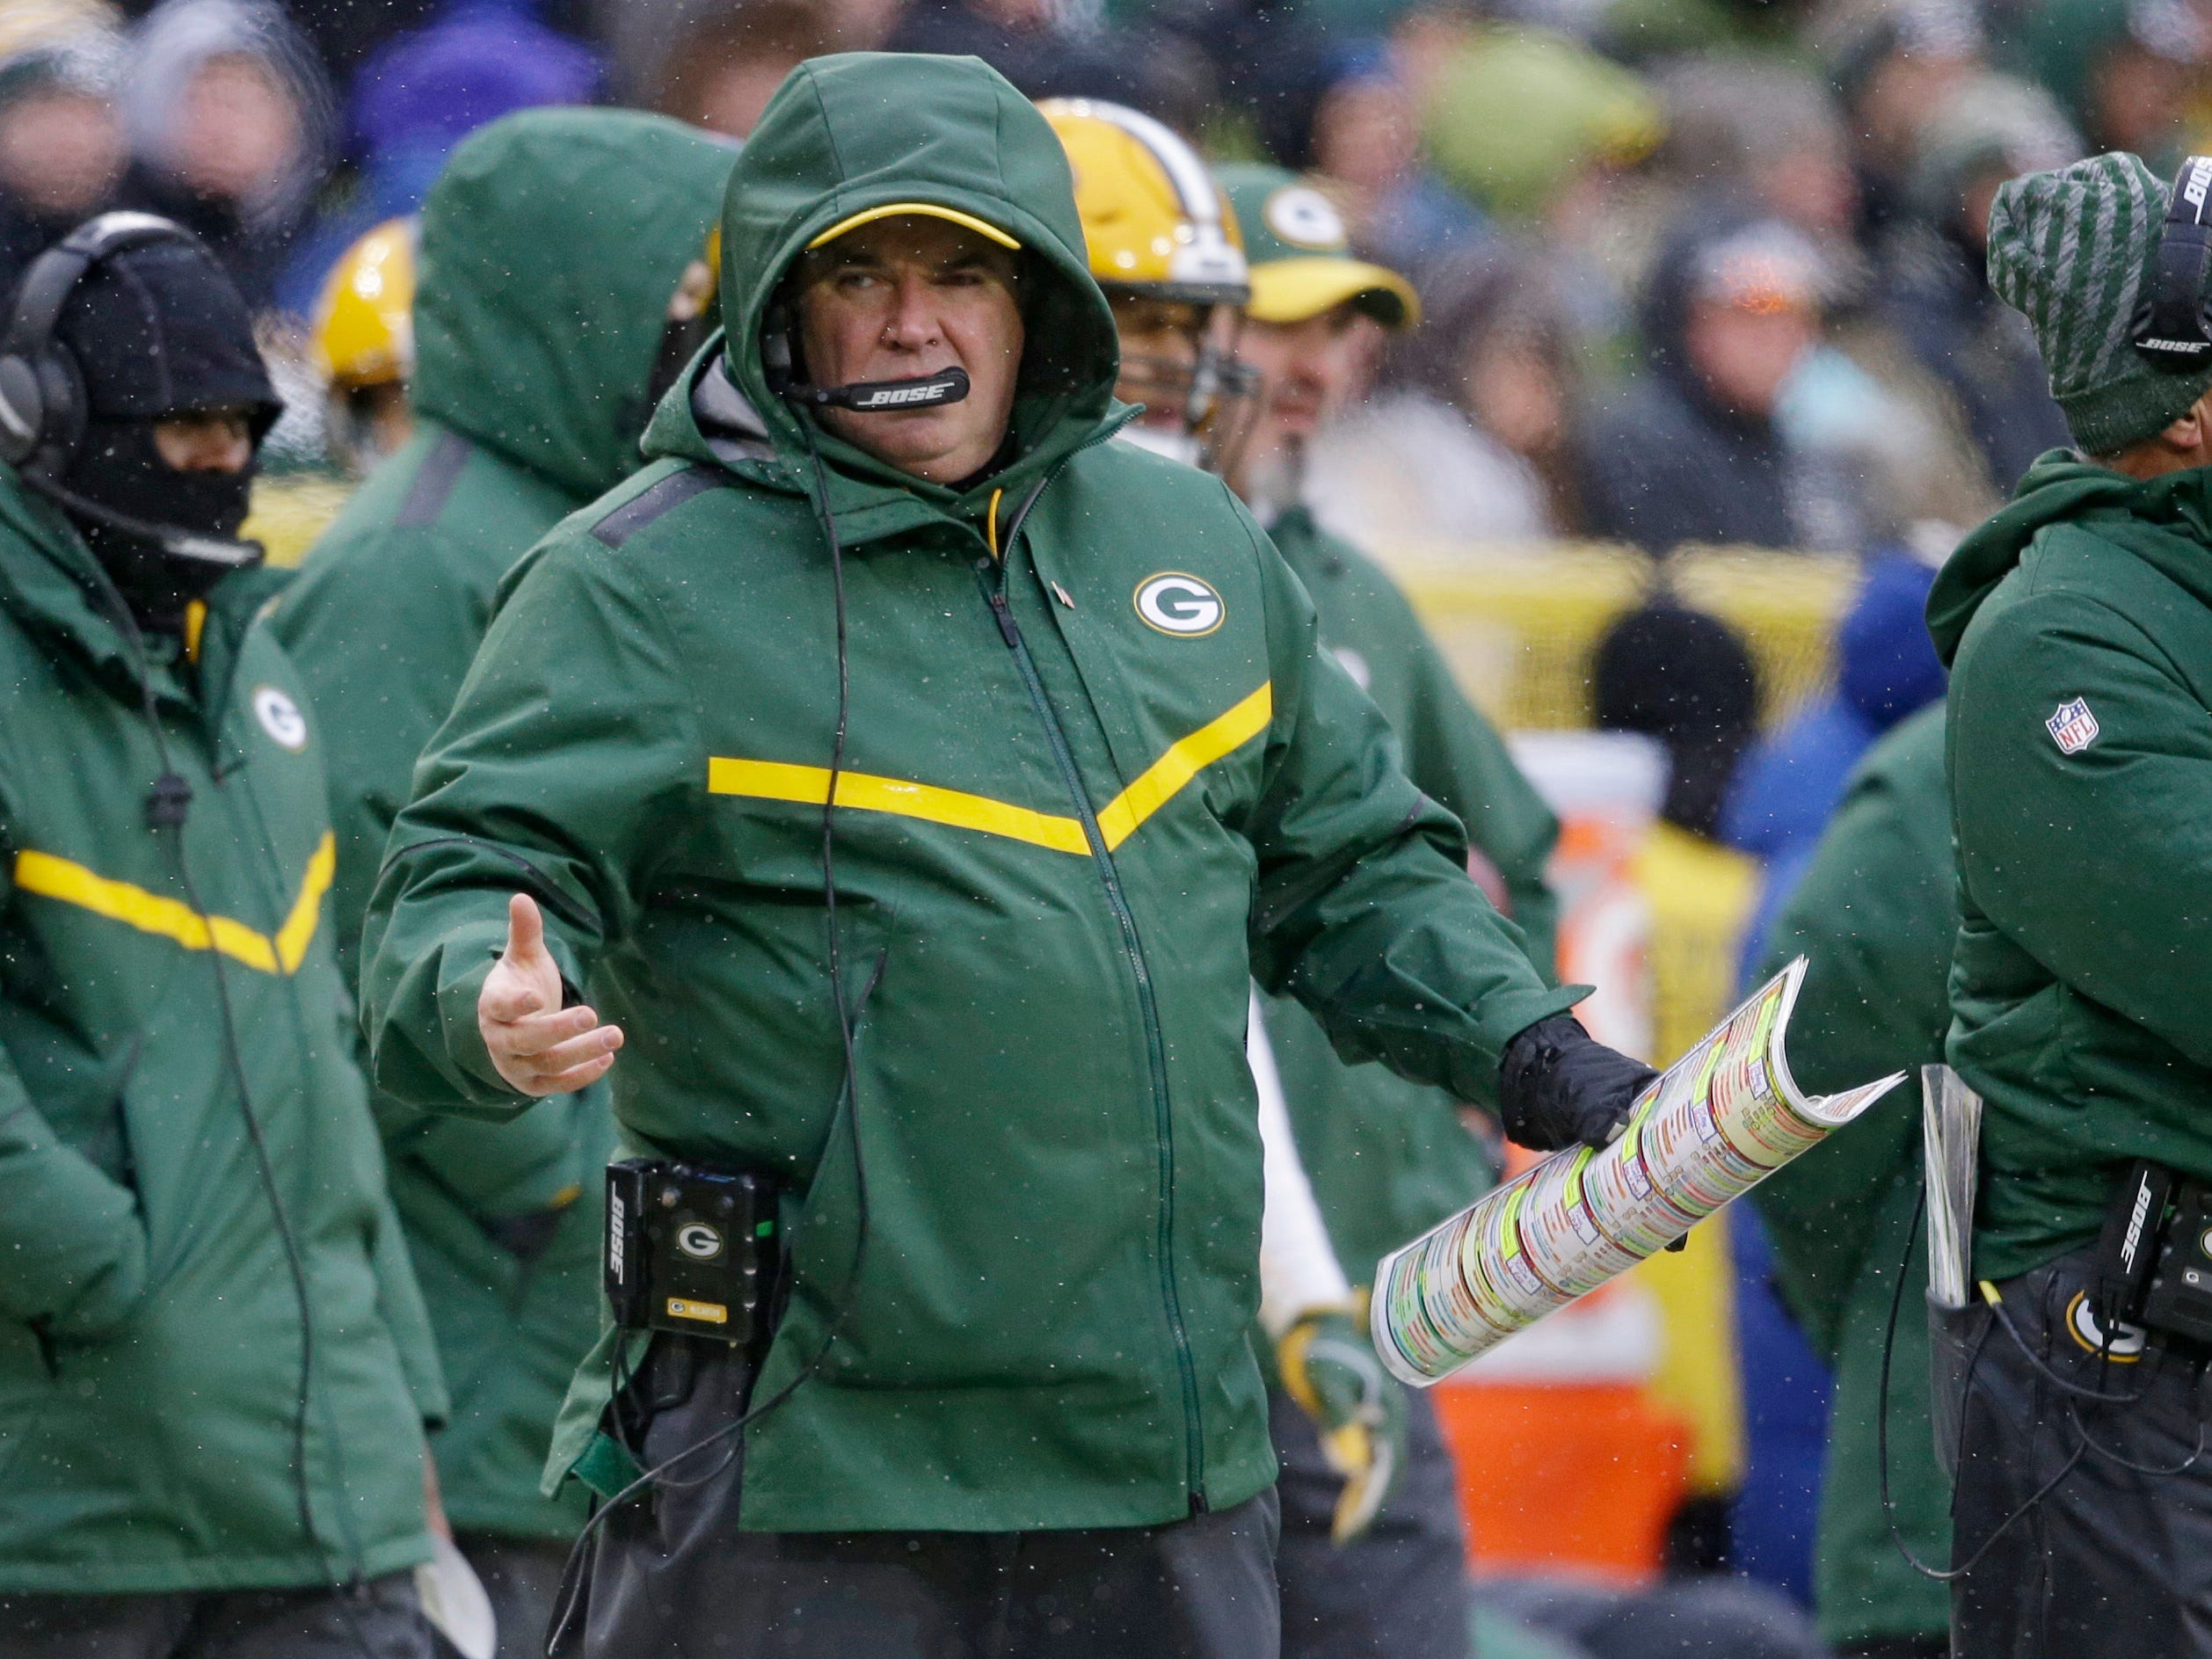 20. Packers (4-7-1) | Last game: Lost to the Cardinals, 20-17 | Previous ranking: 19 | The buzz: Packers smart to get a jump start on the hiring cycle by firing Mike McCarthy – especially if they want a college coach like Lincoln Riley.